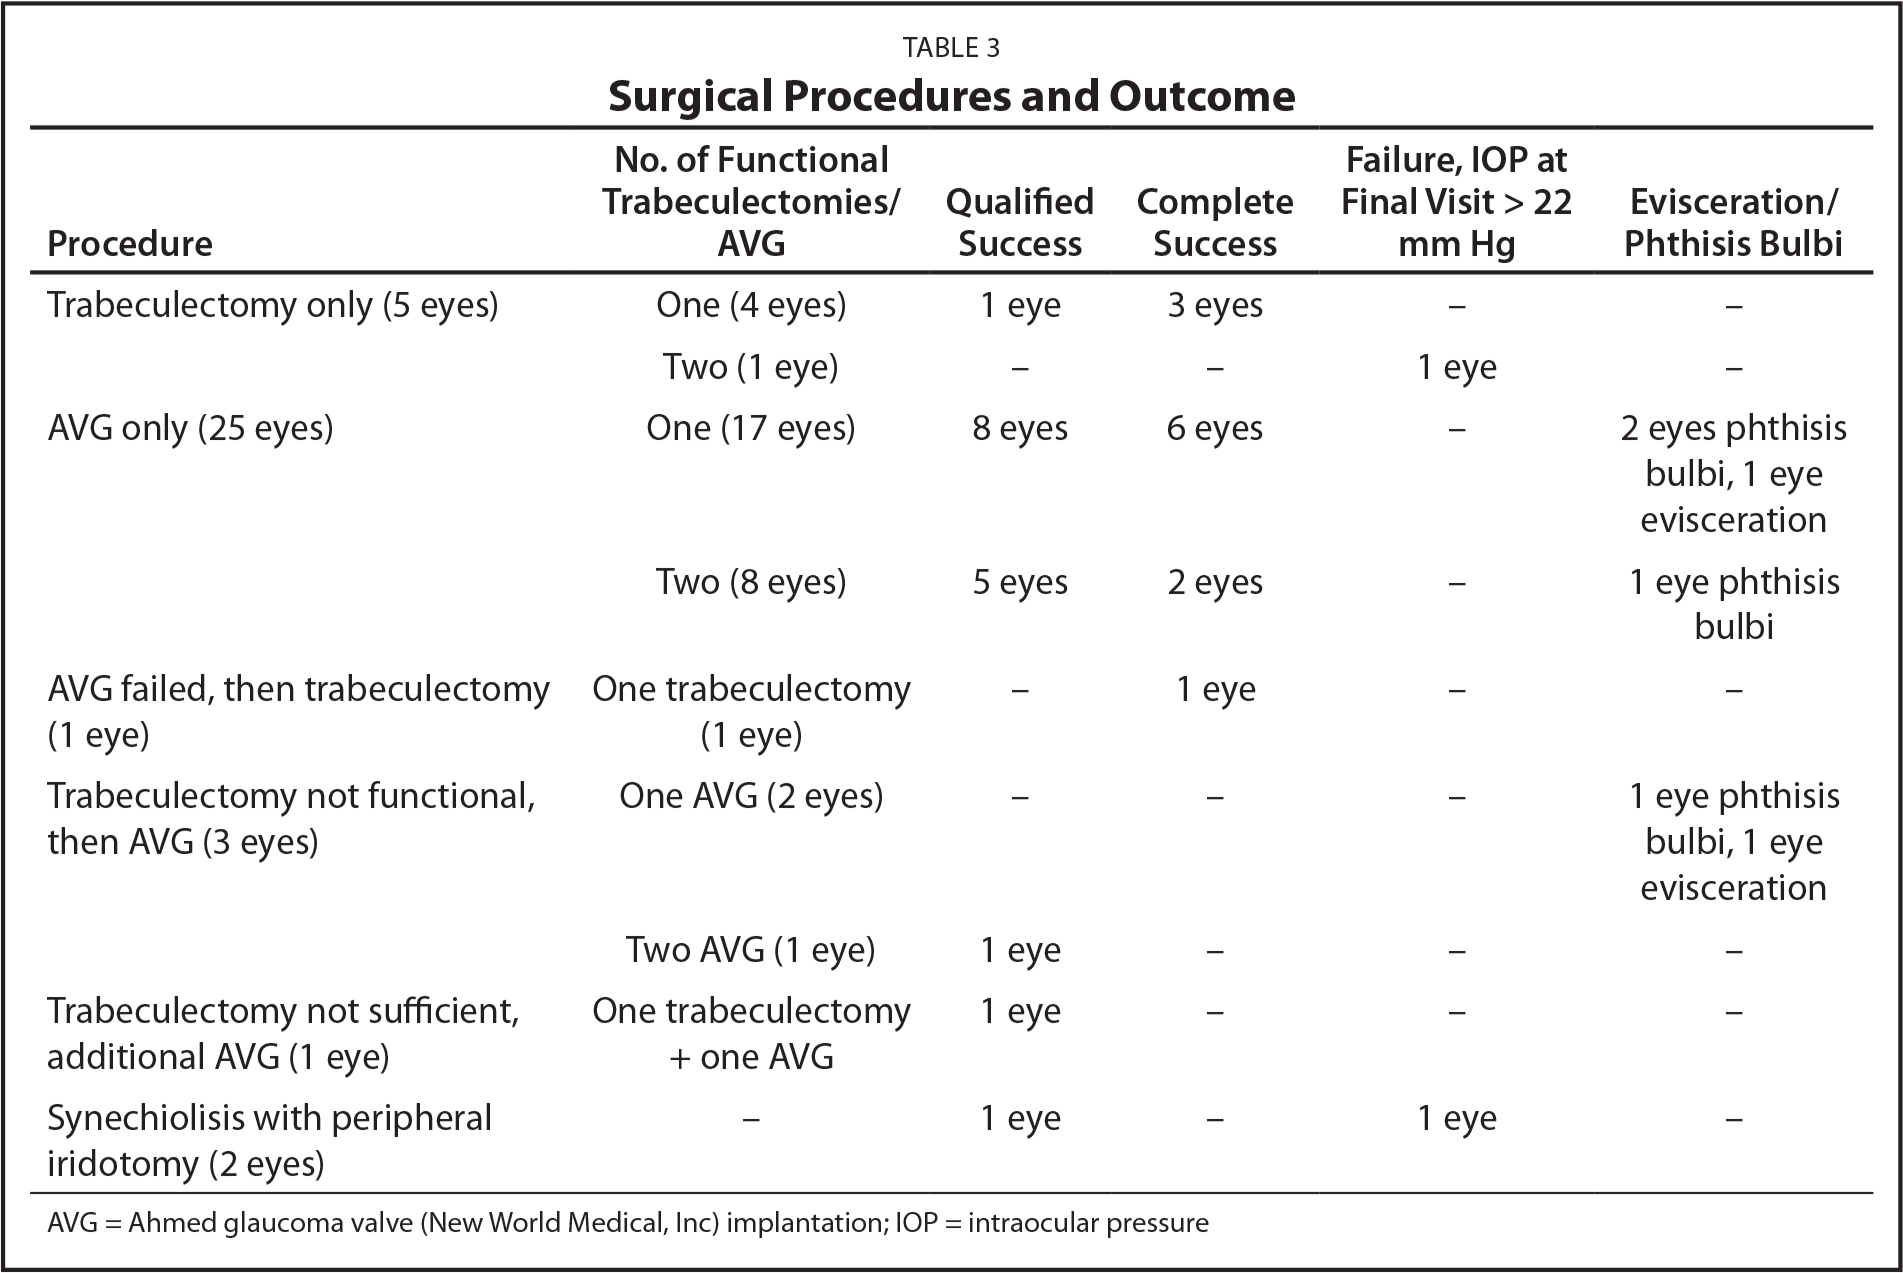 Surgical Procedures and Outcome